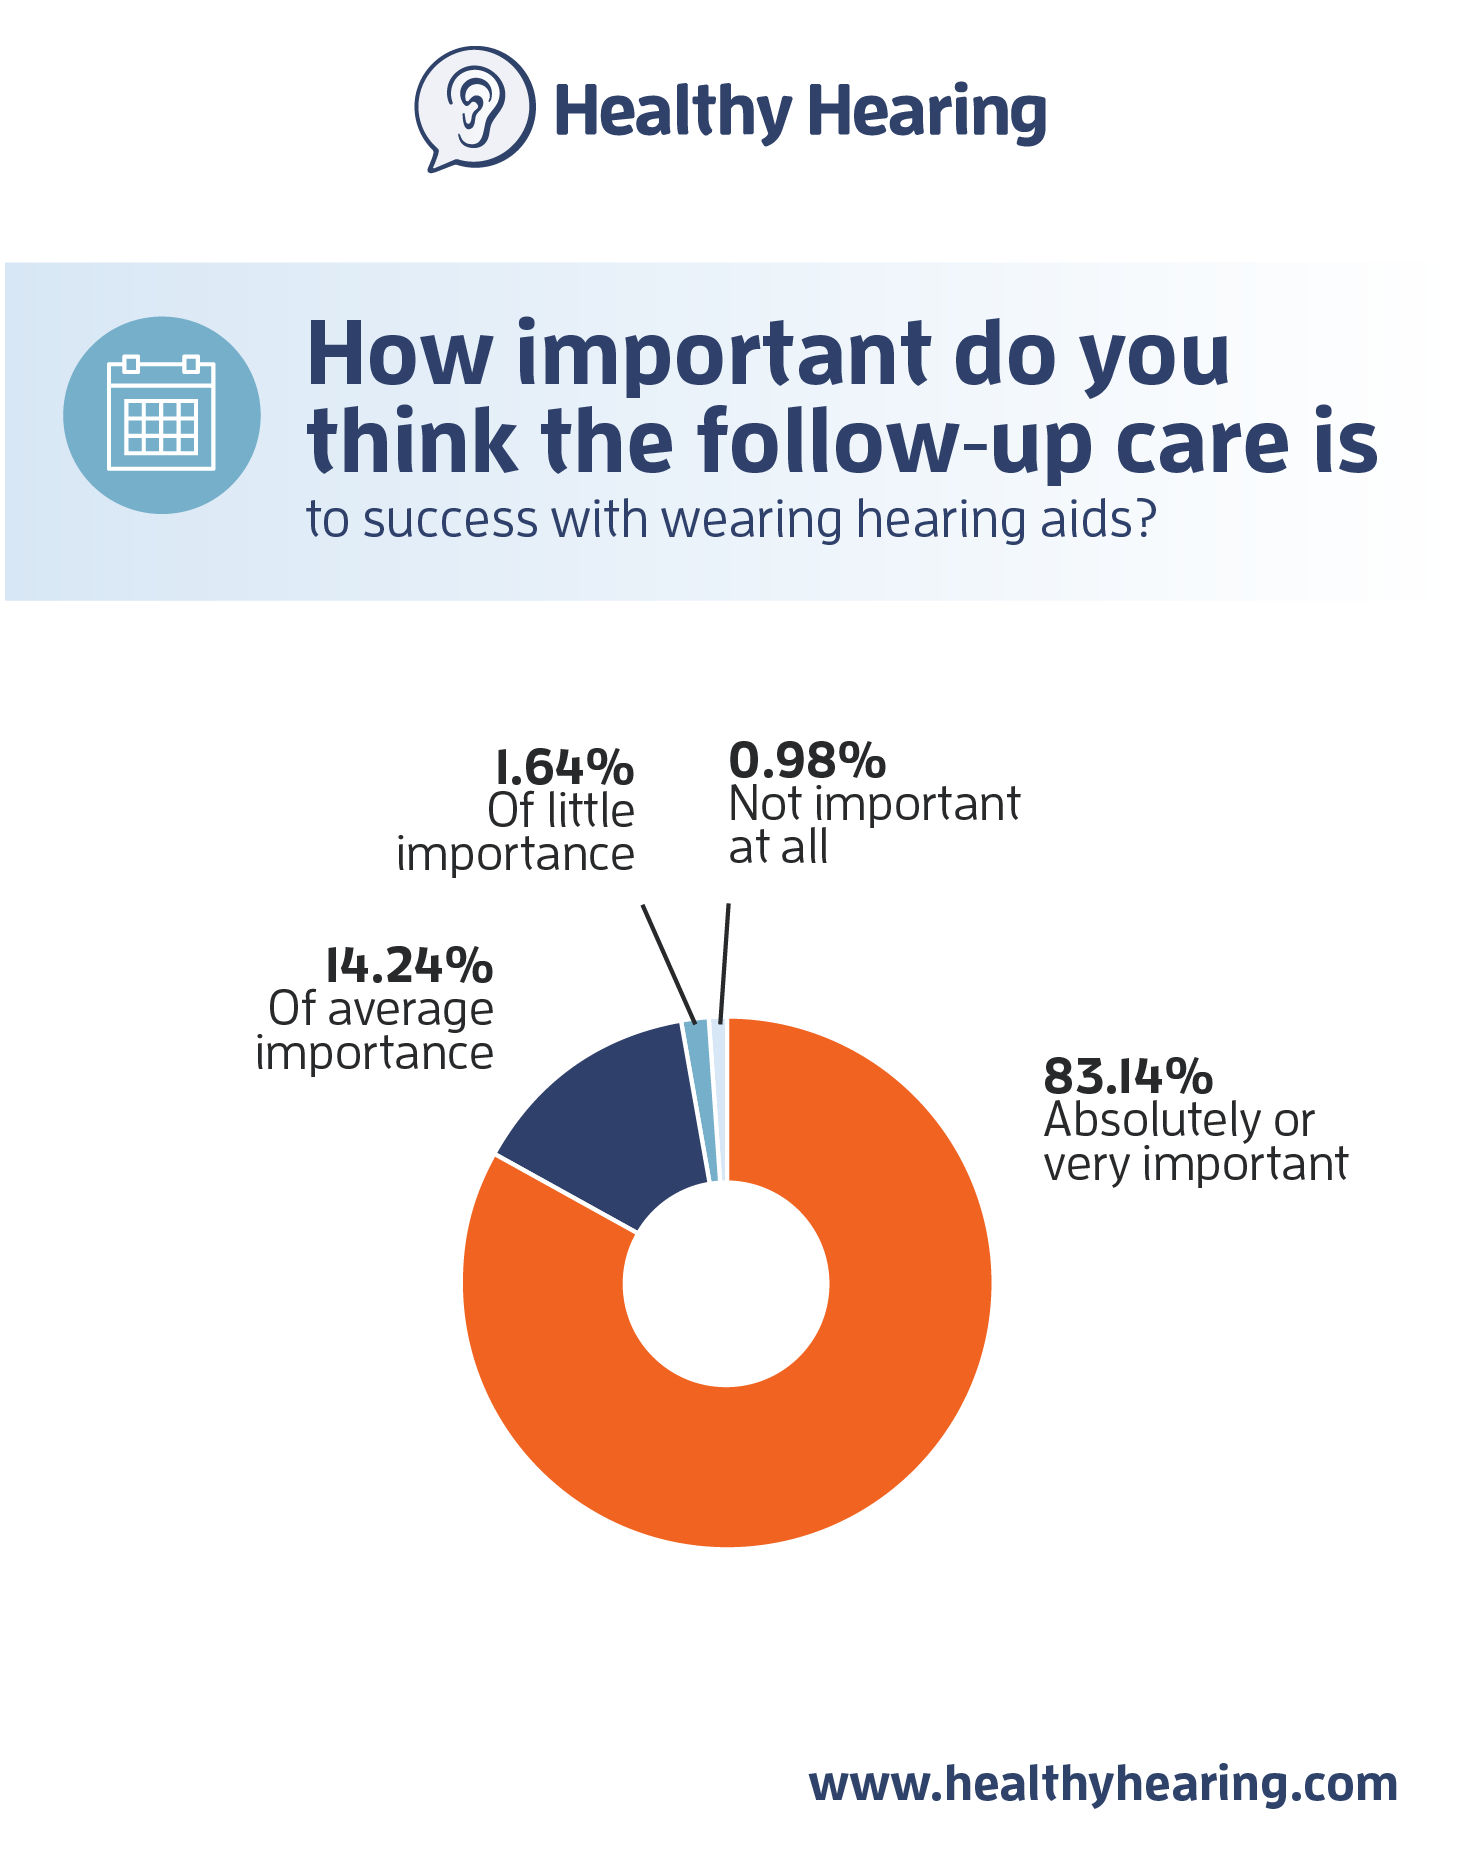 Consumers value professional care in a post-OTC hearing aid